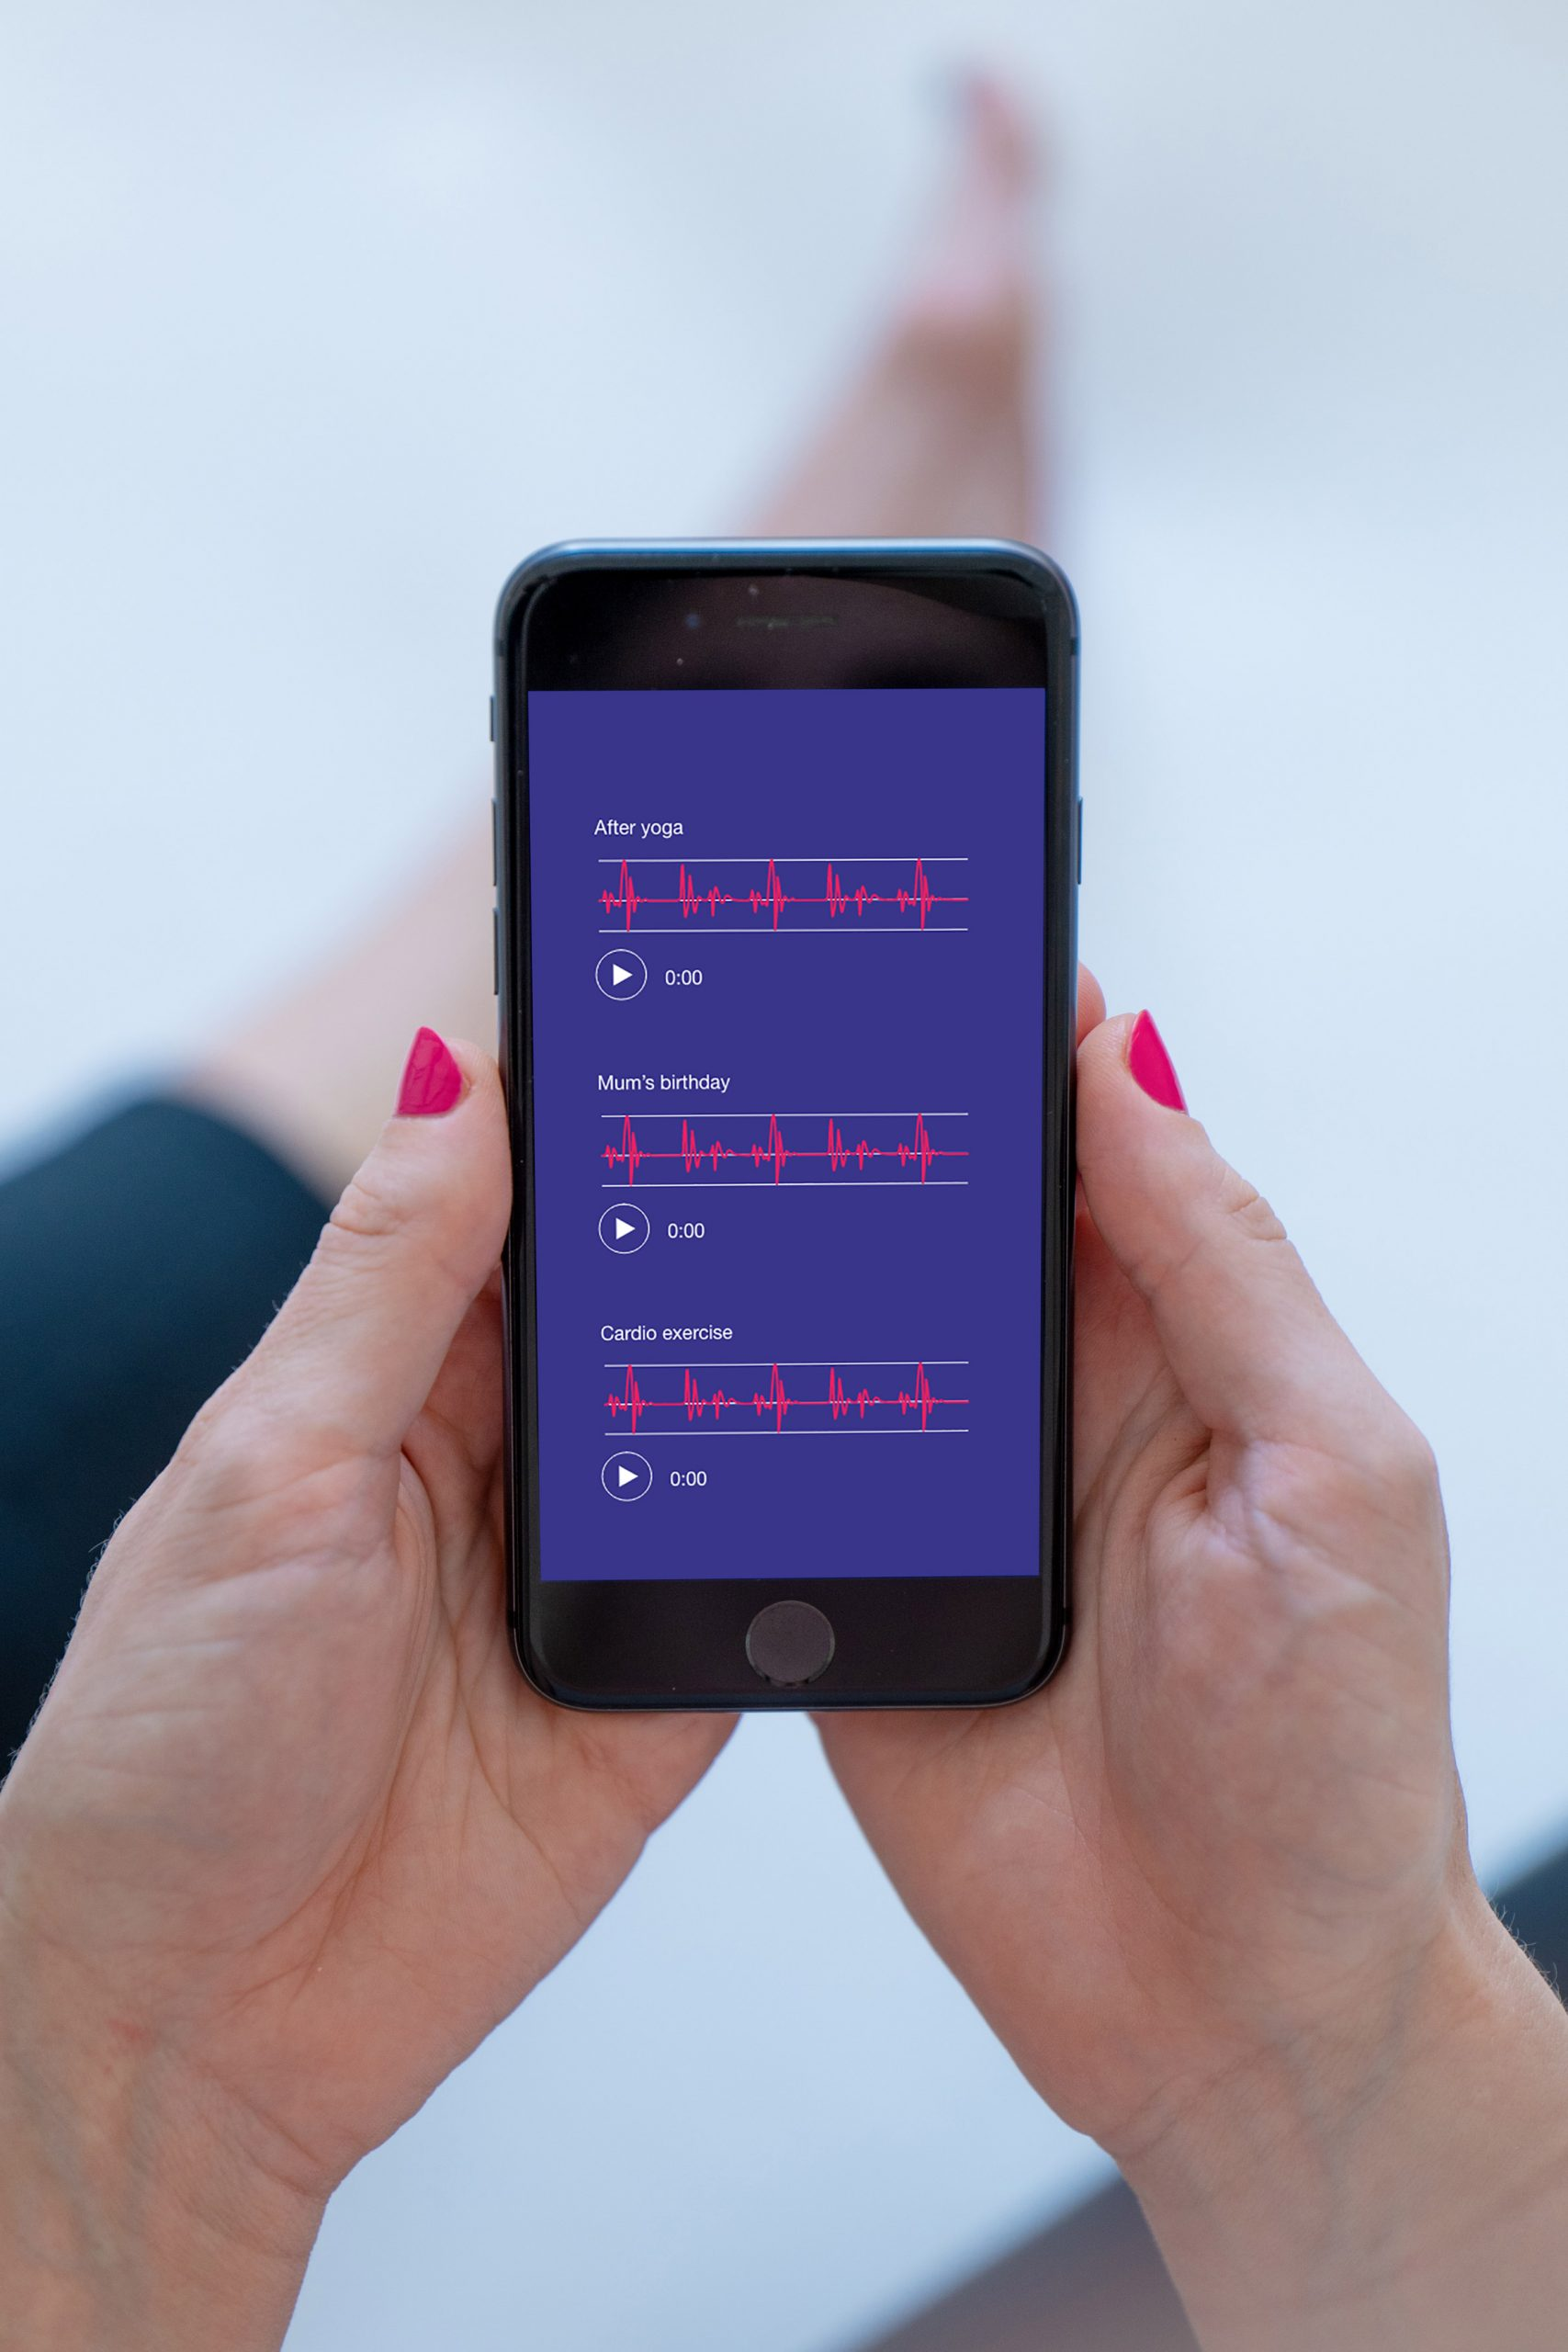 Smartphone showing Echoes app with heart audio recordings